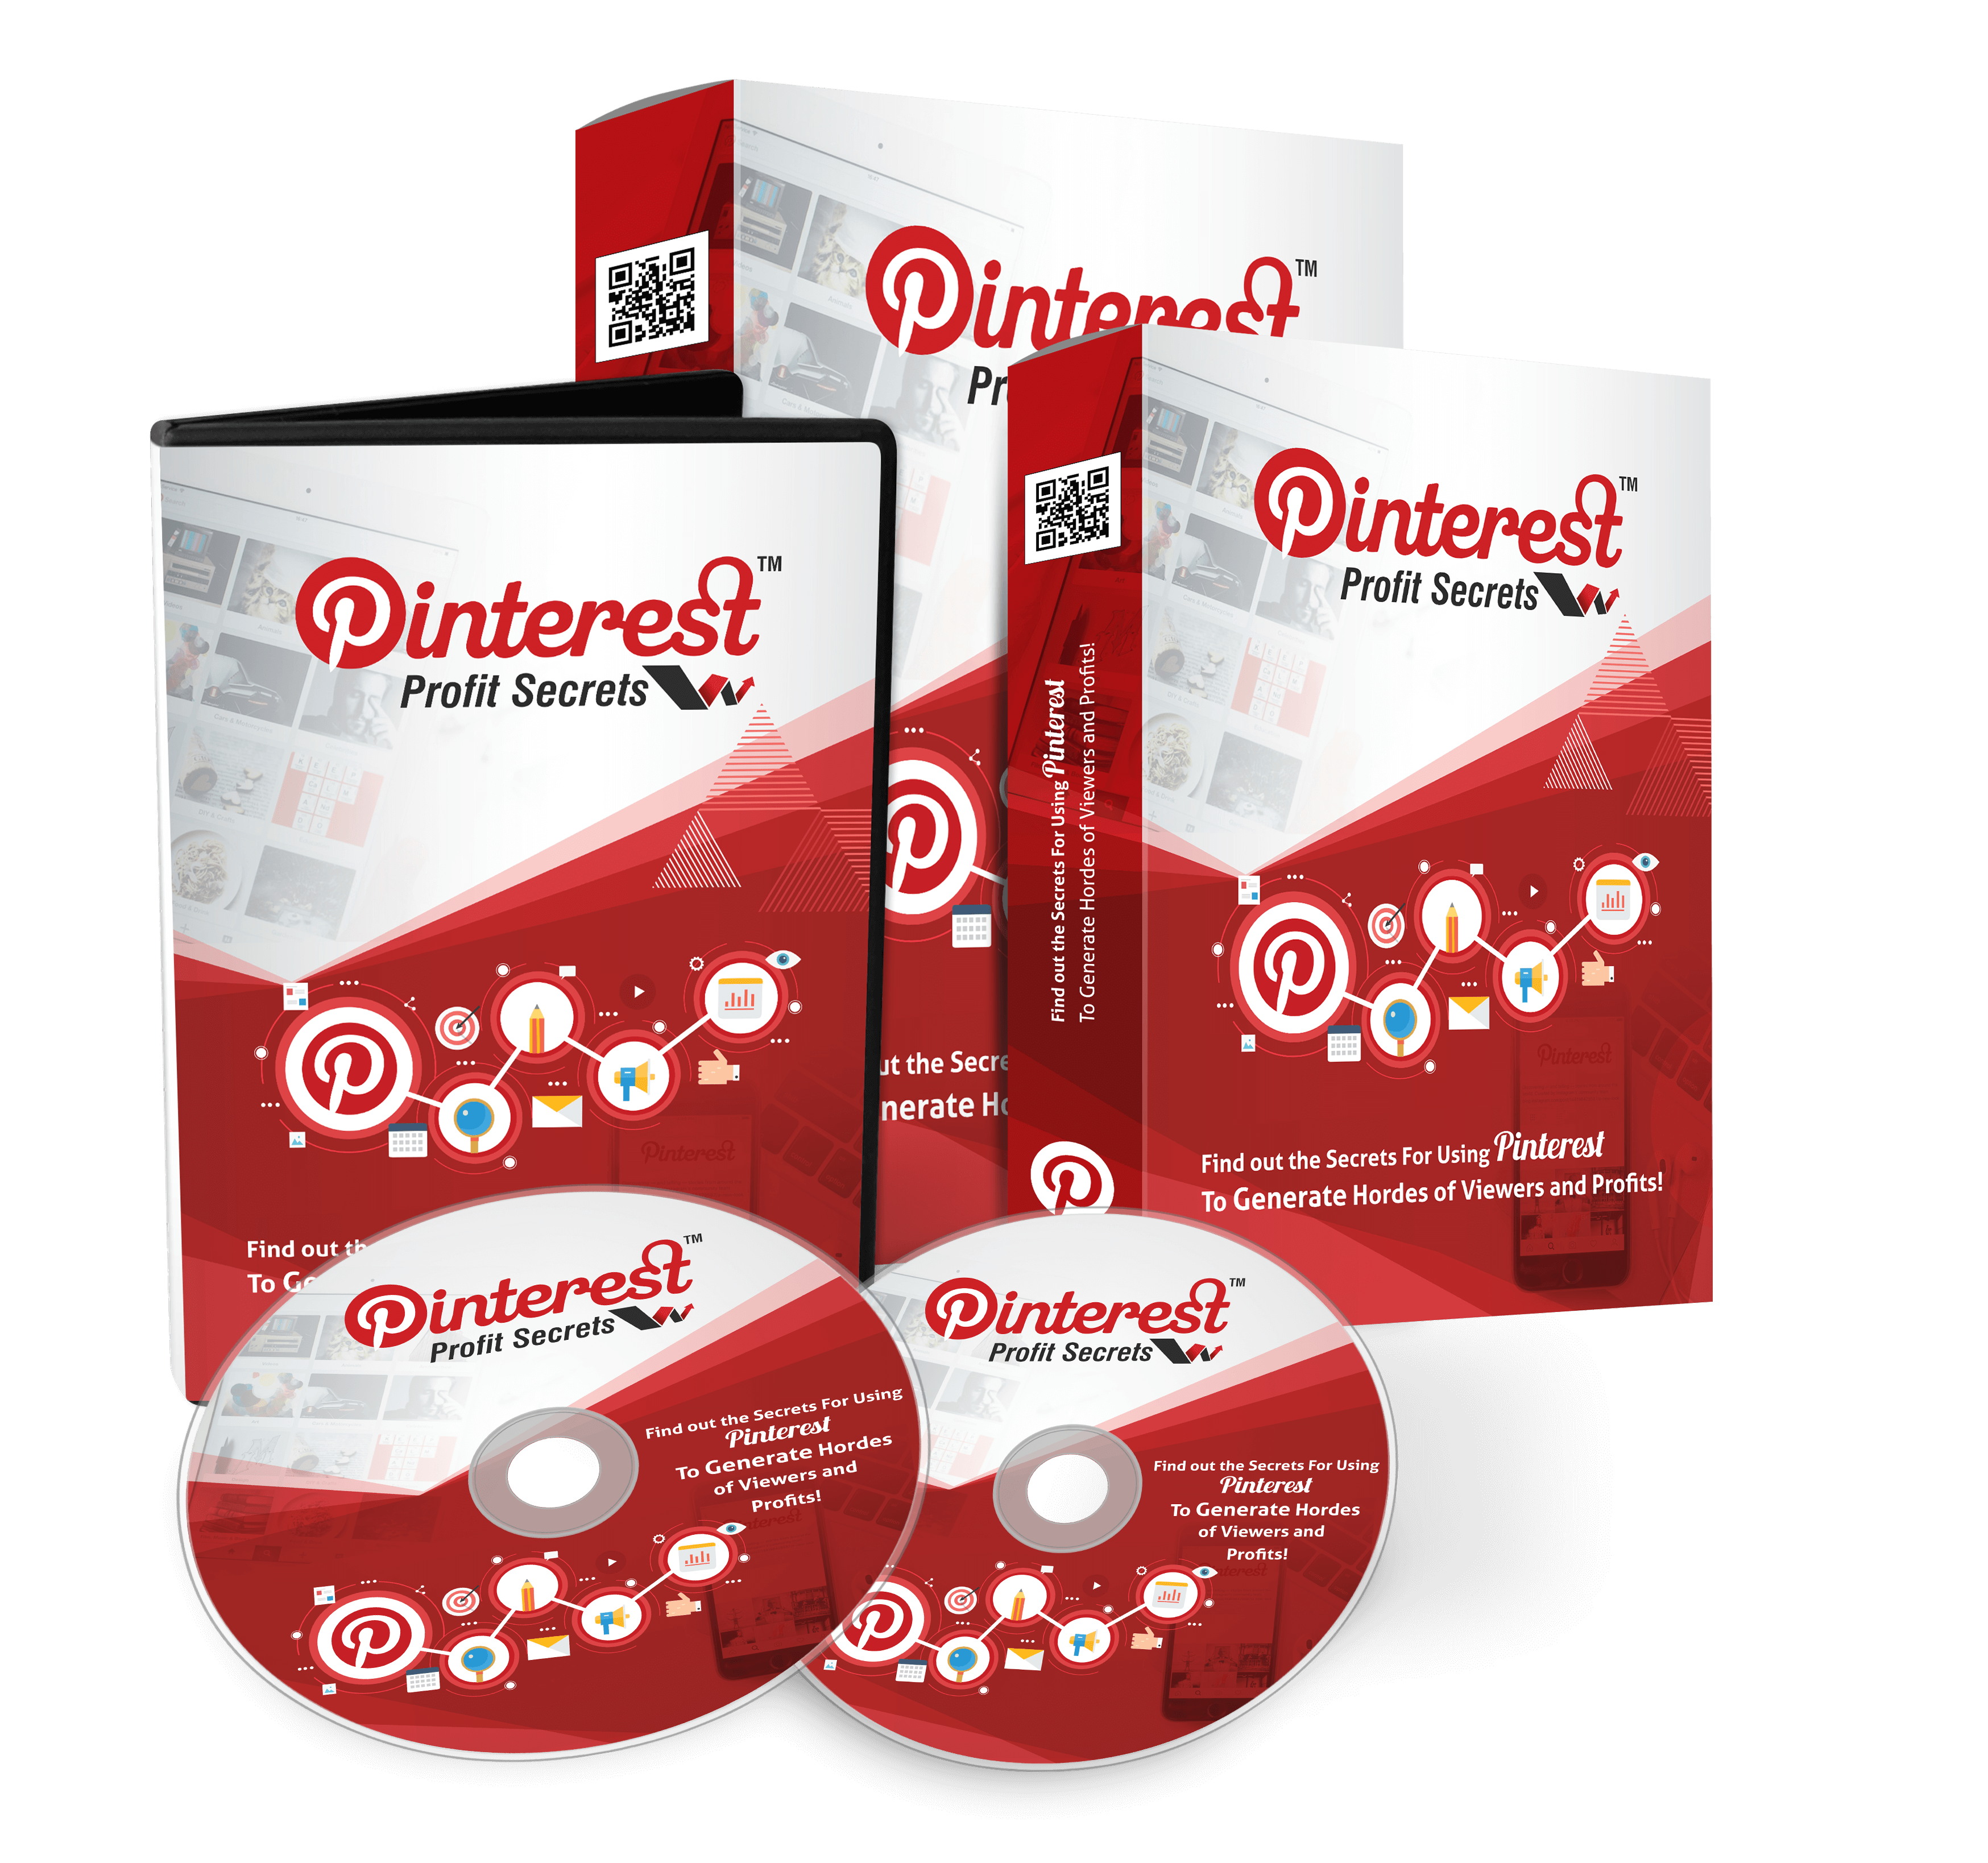 Pinterest-Profit-Secrets-Review